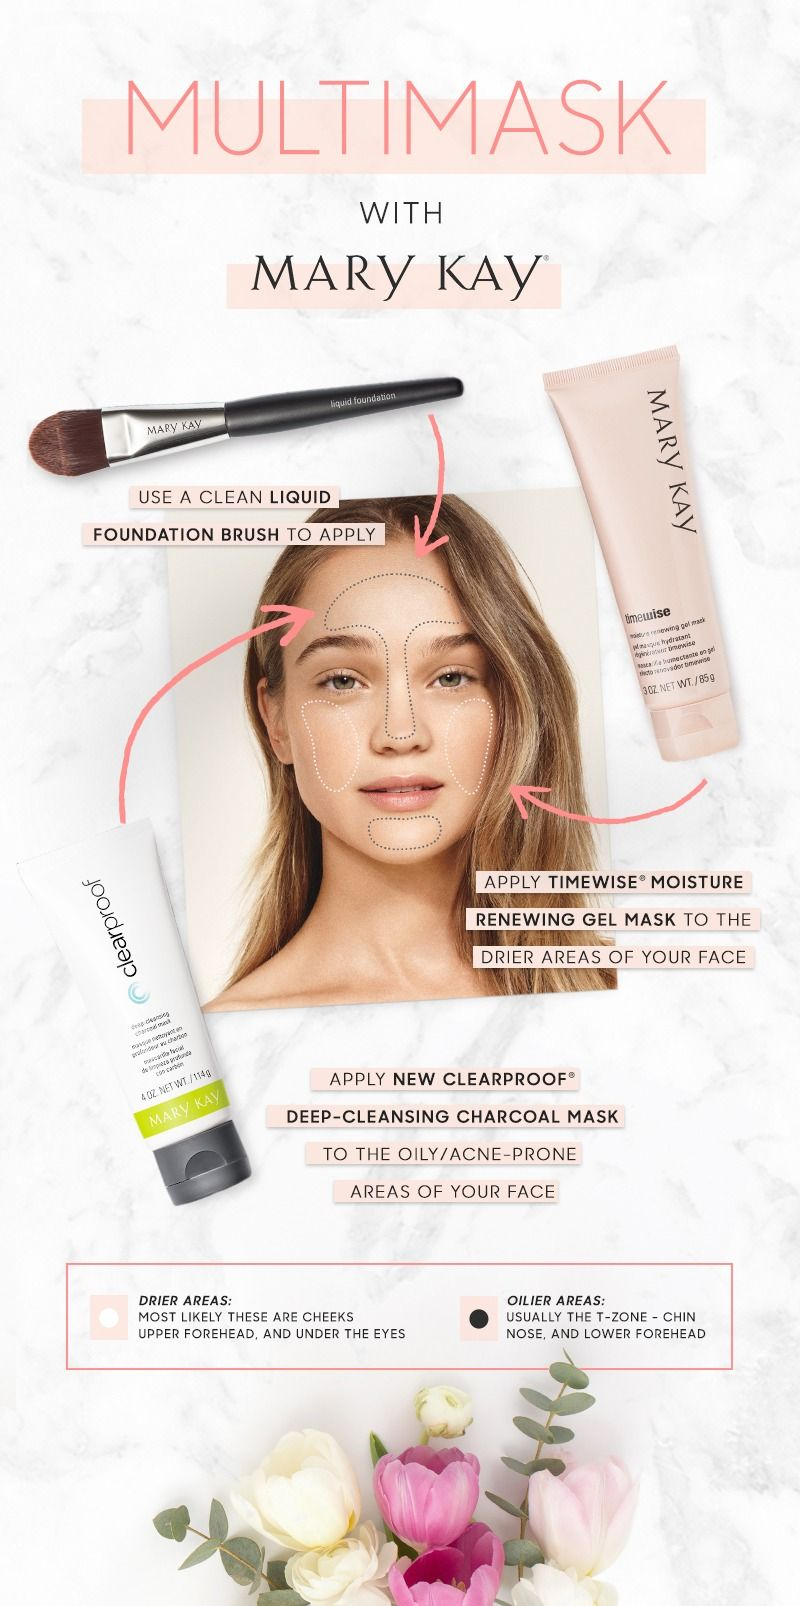 mary kay clear proof charcoal mask instructions